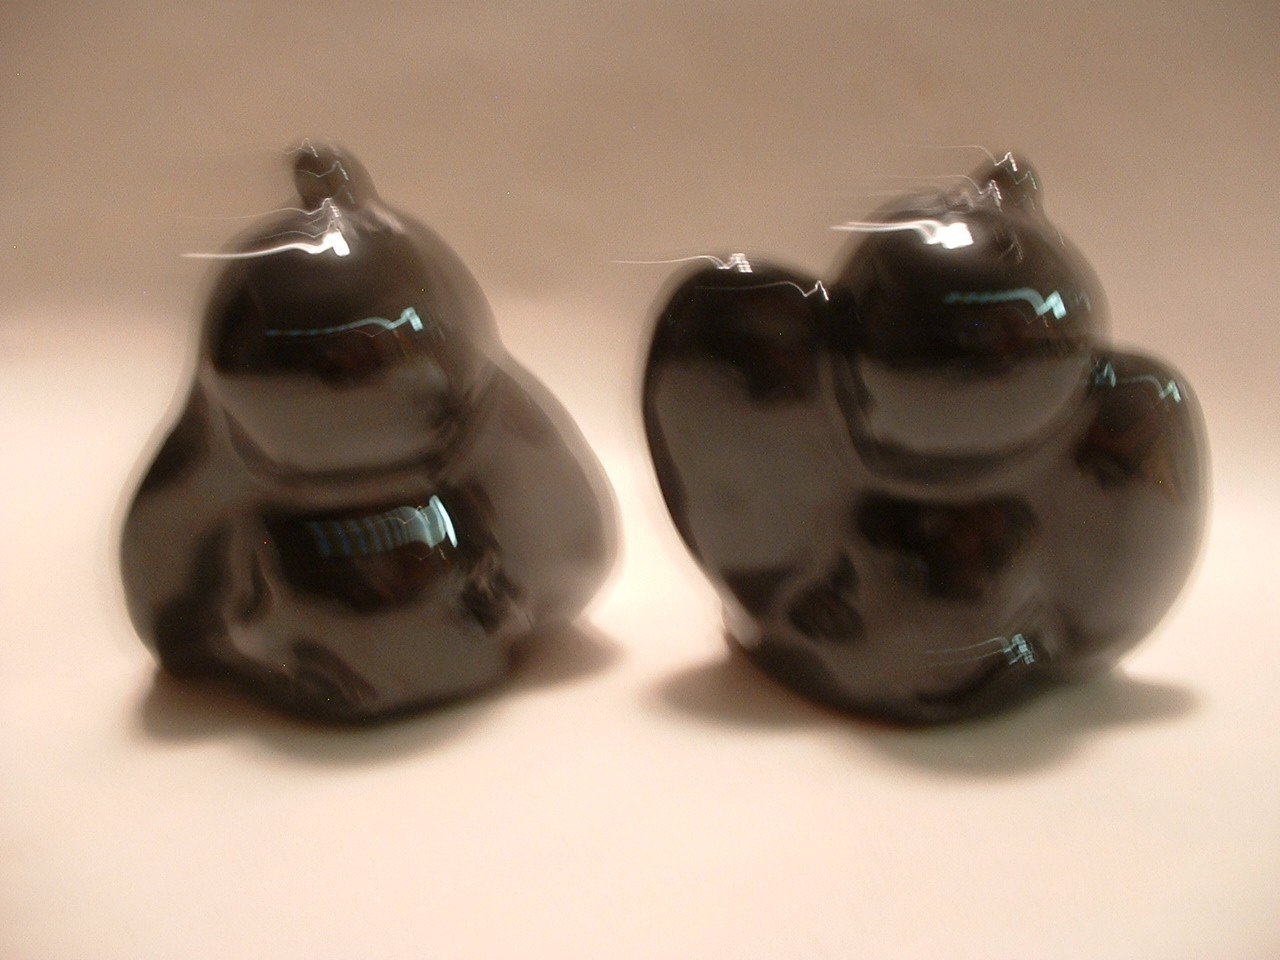 Vintage Elephant Salt / Pepper Shakers